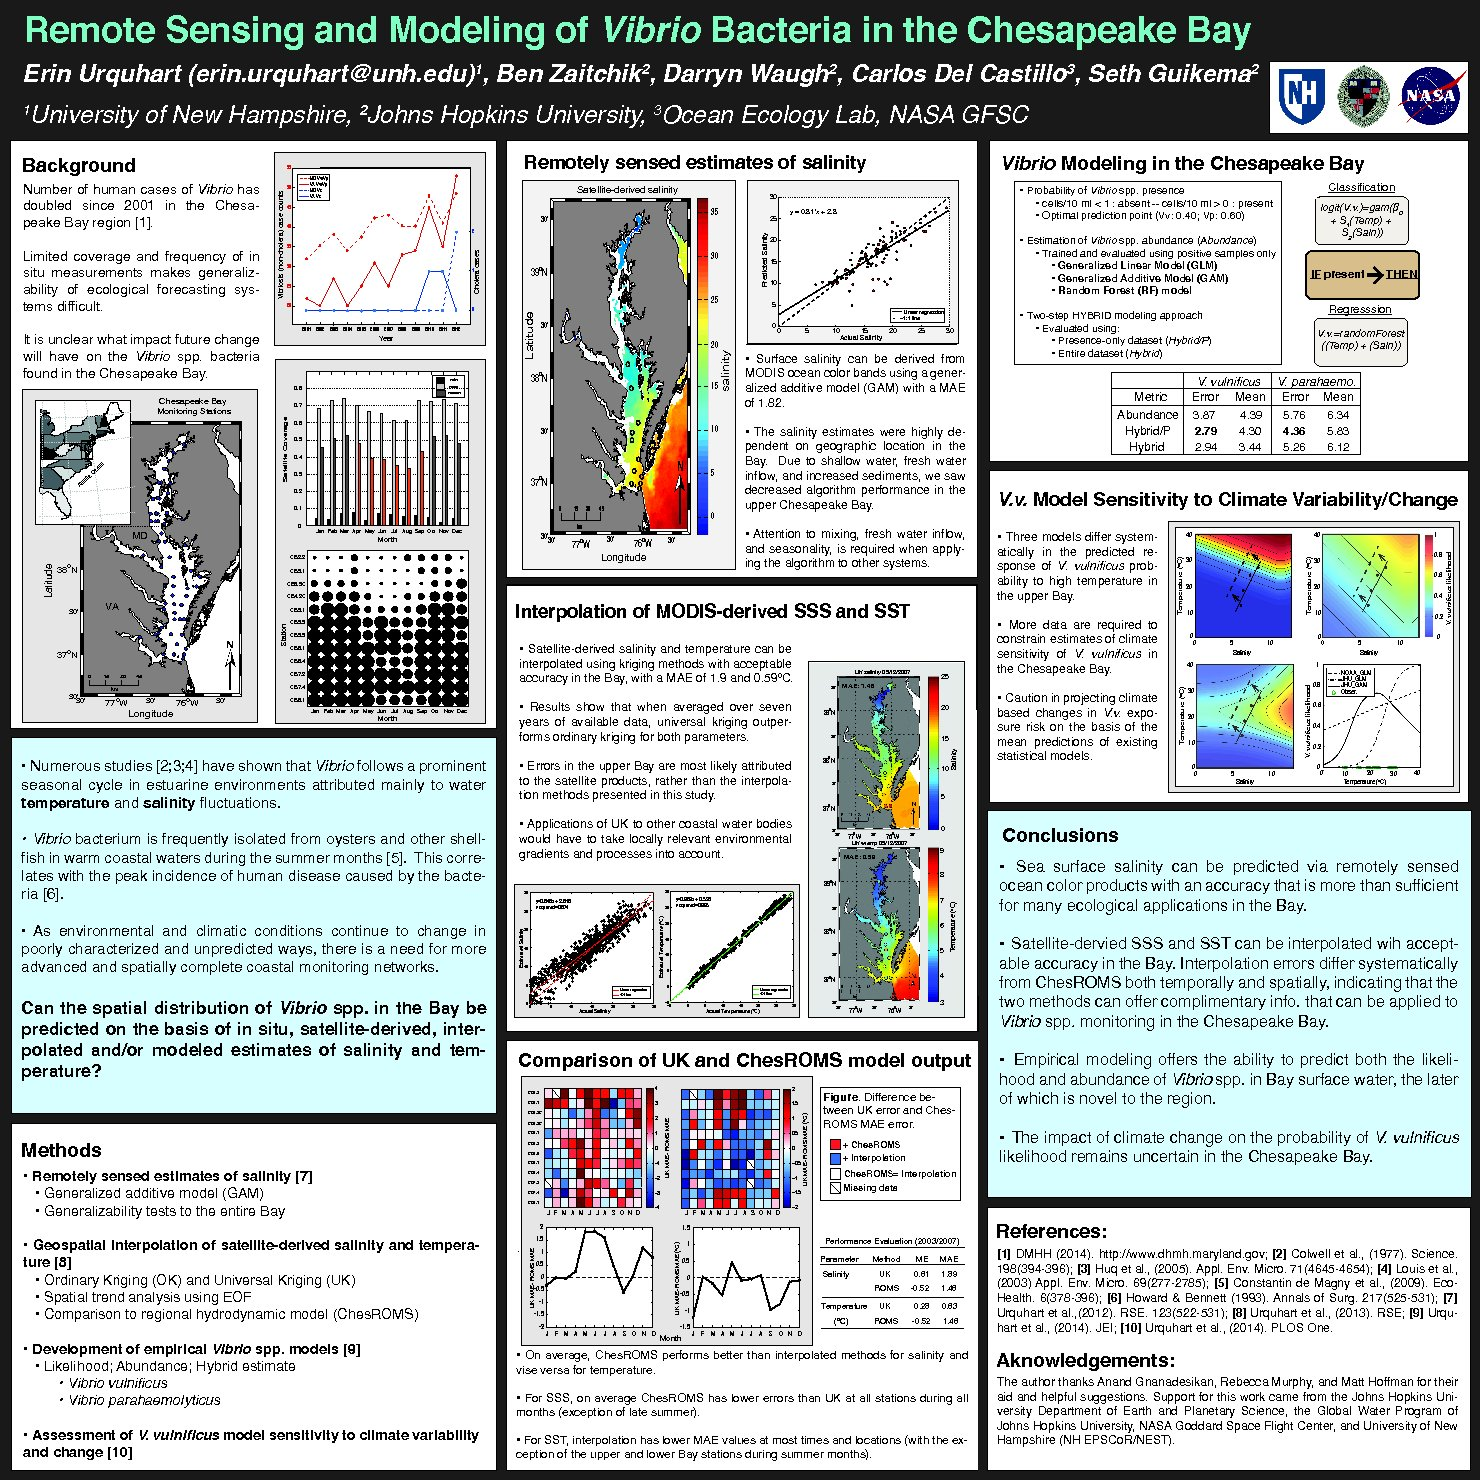 Remote Sensing And Modeling Of Vibrio Bacteria In The Chesapeake Bay by erinu